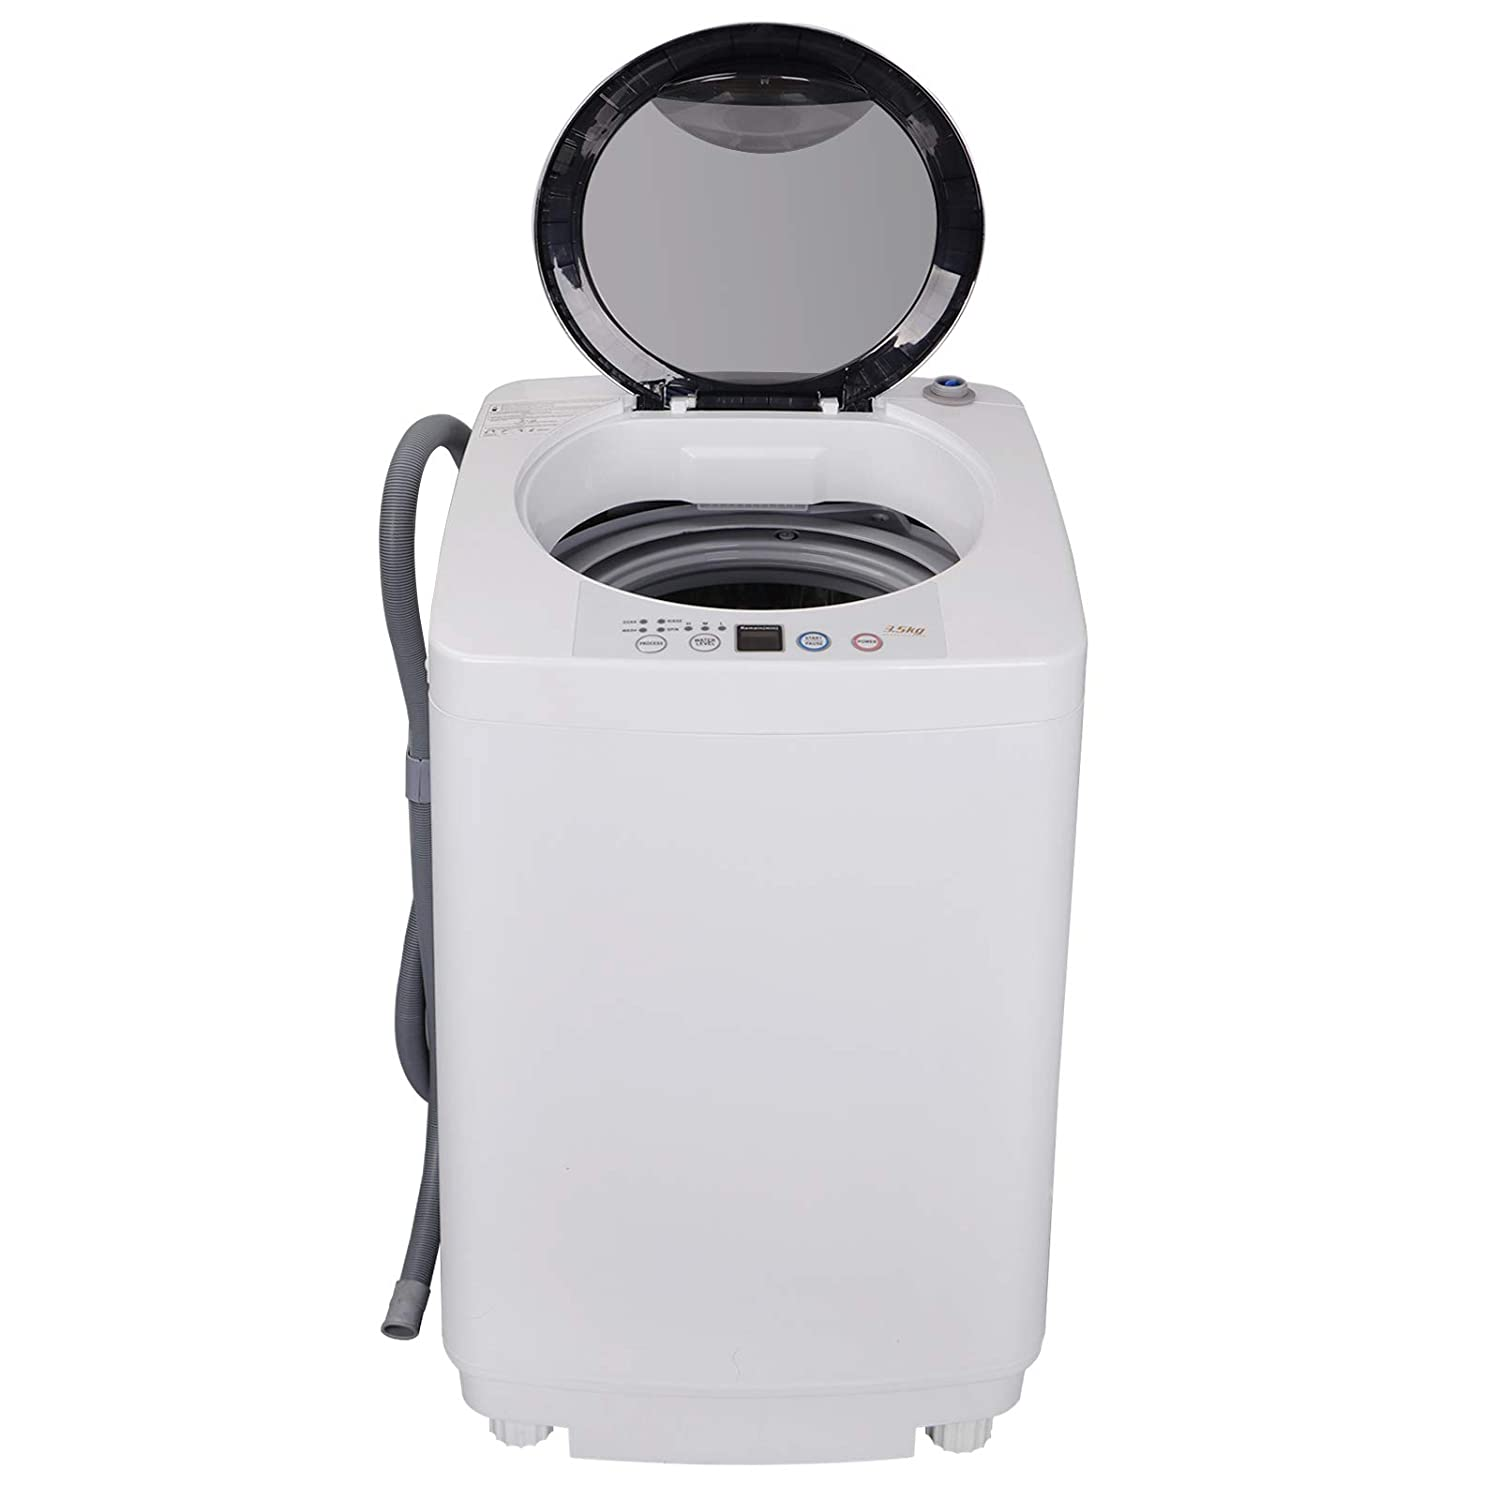 ZENY 2-in-1 Compact Mini Twin Tub Washing Machine w/Spin Cycle Dryer, 13Lbs Capacity w/Hose, Space/Time/Energy Saving (Full-automatic 10 lbs)